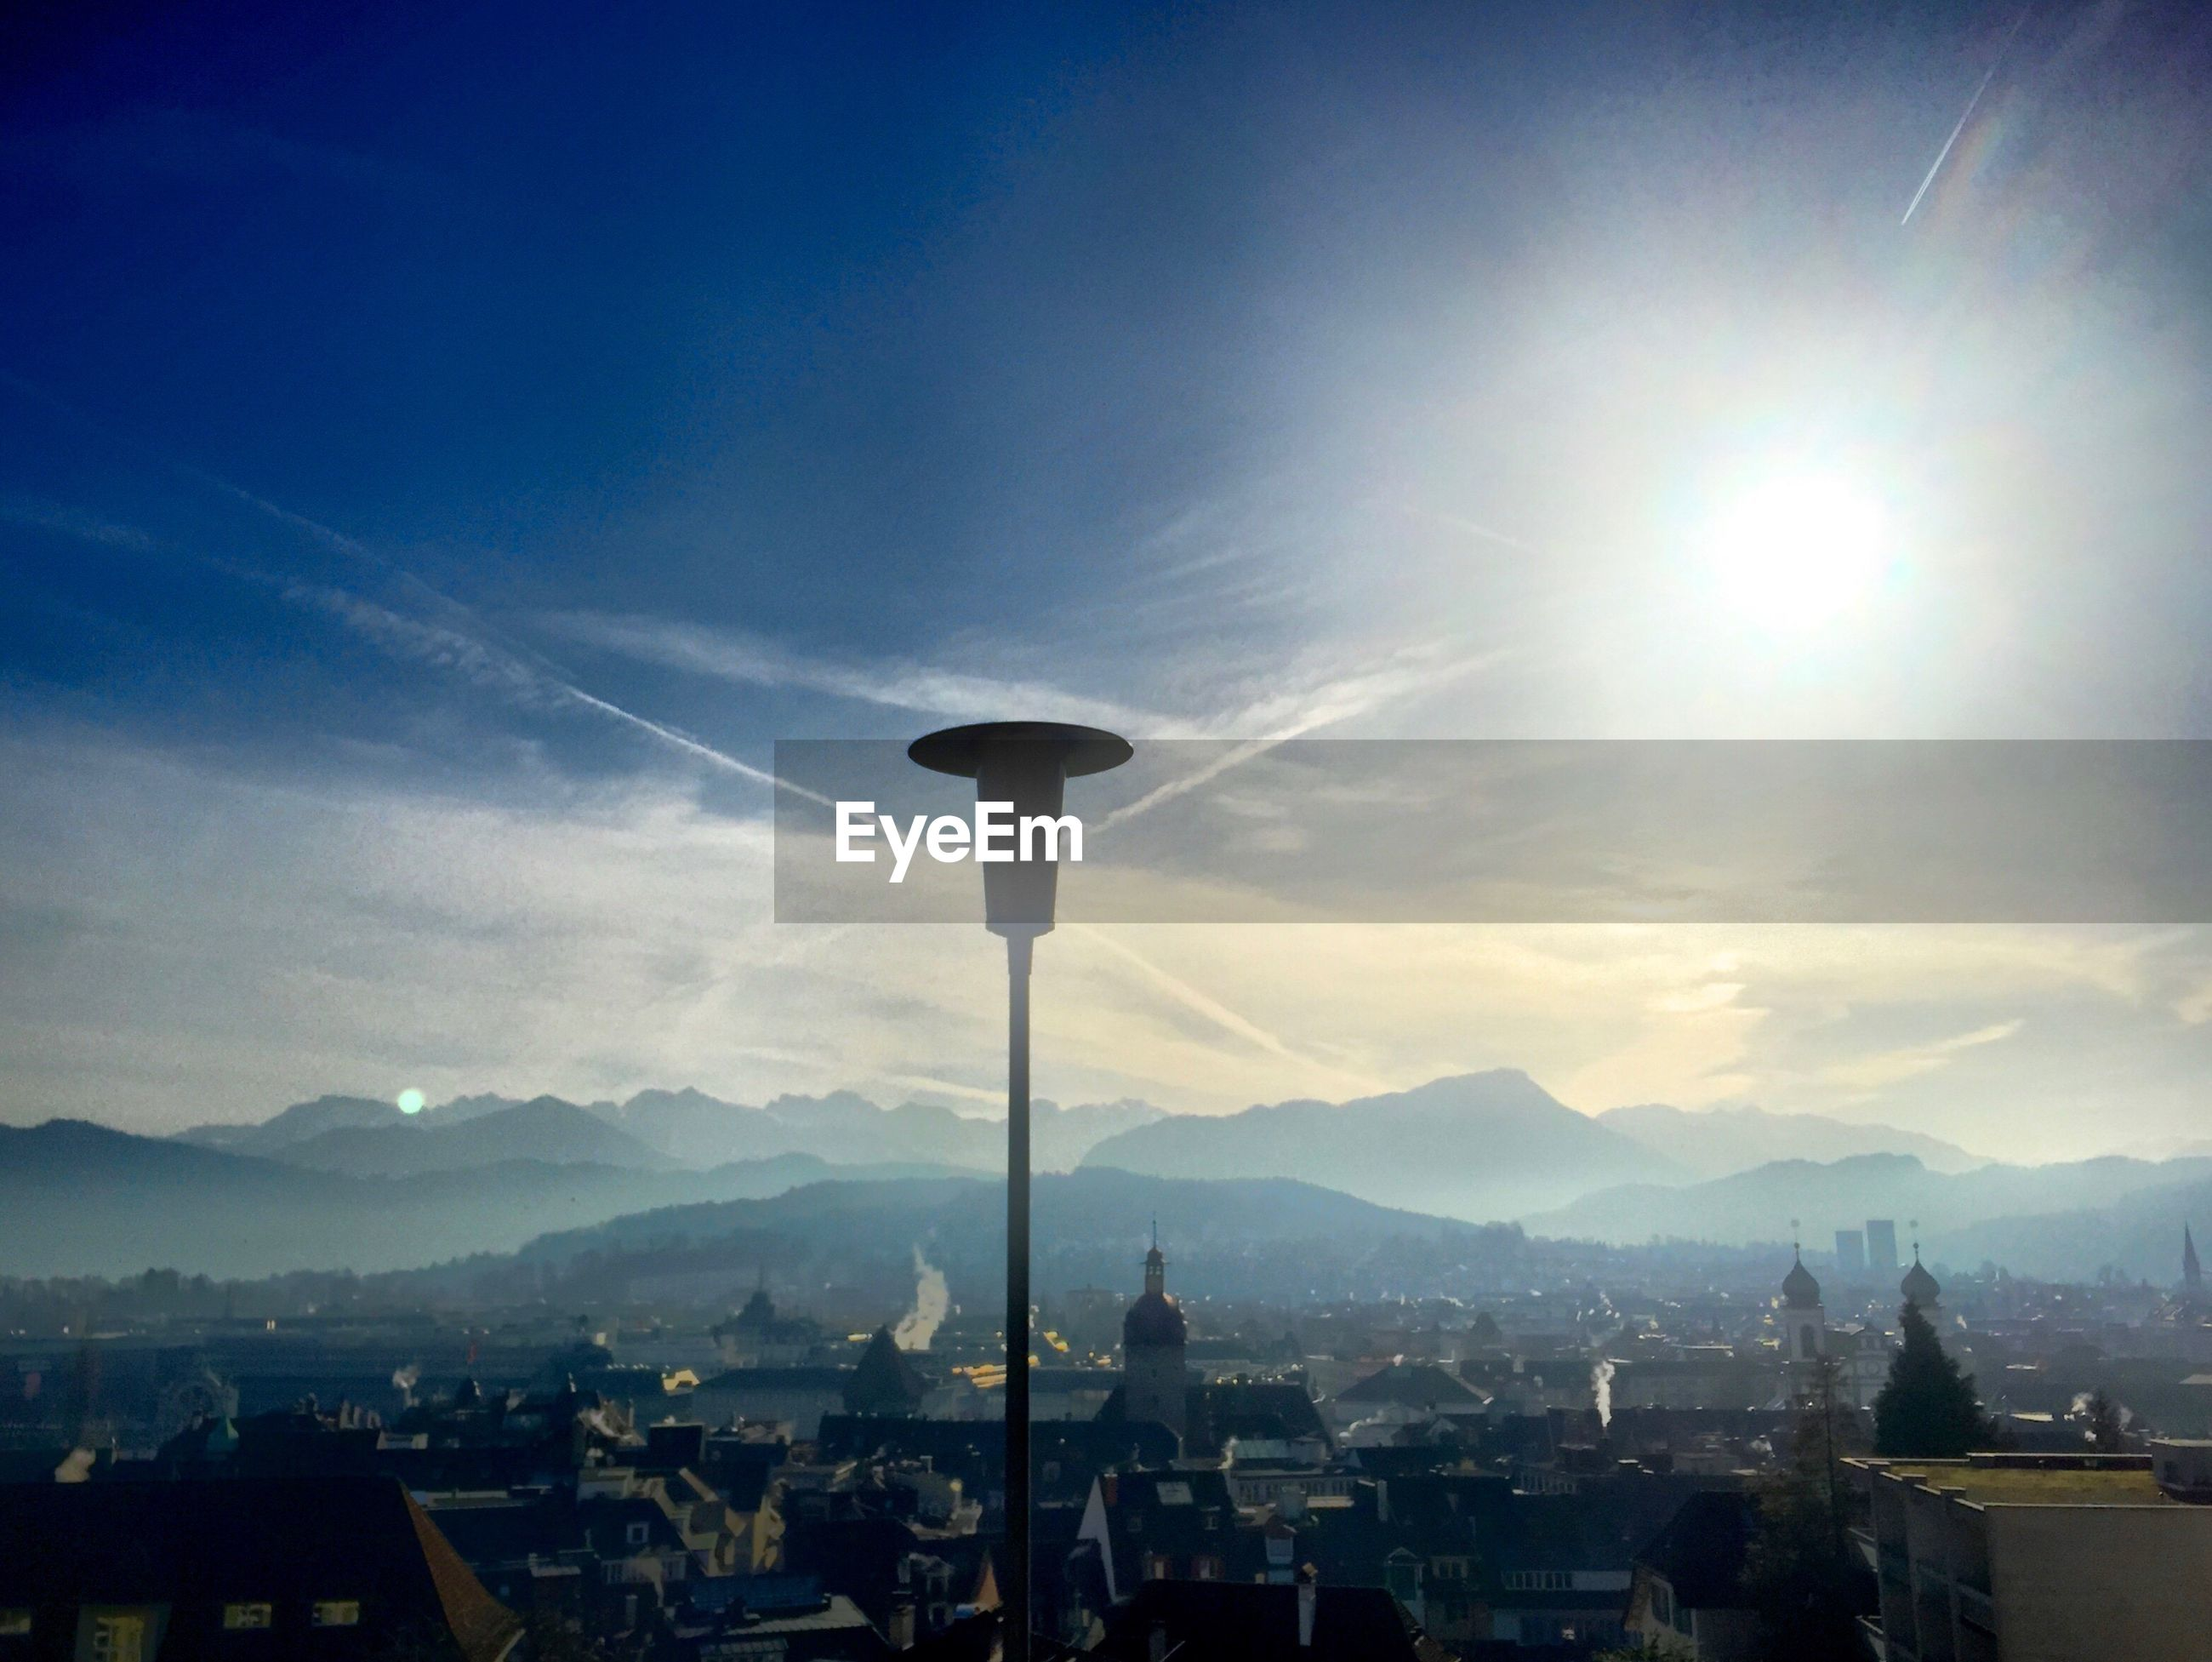 Street light against cityscape by silhouette mountains on sunny day